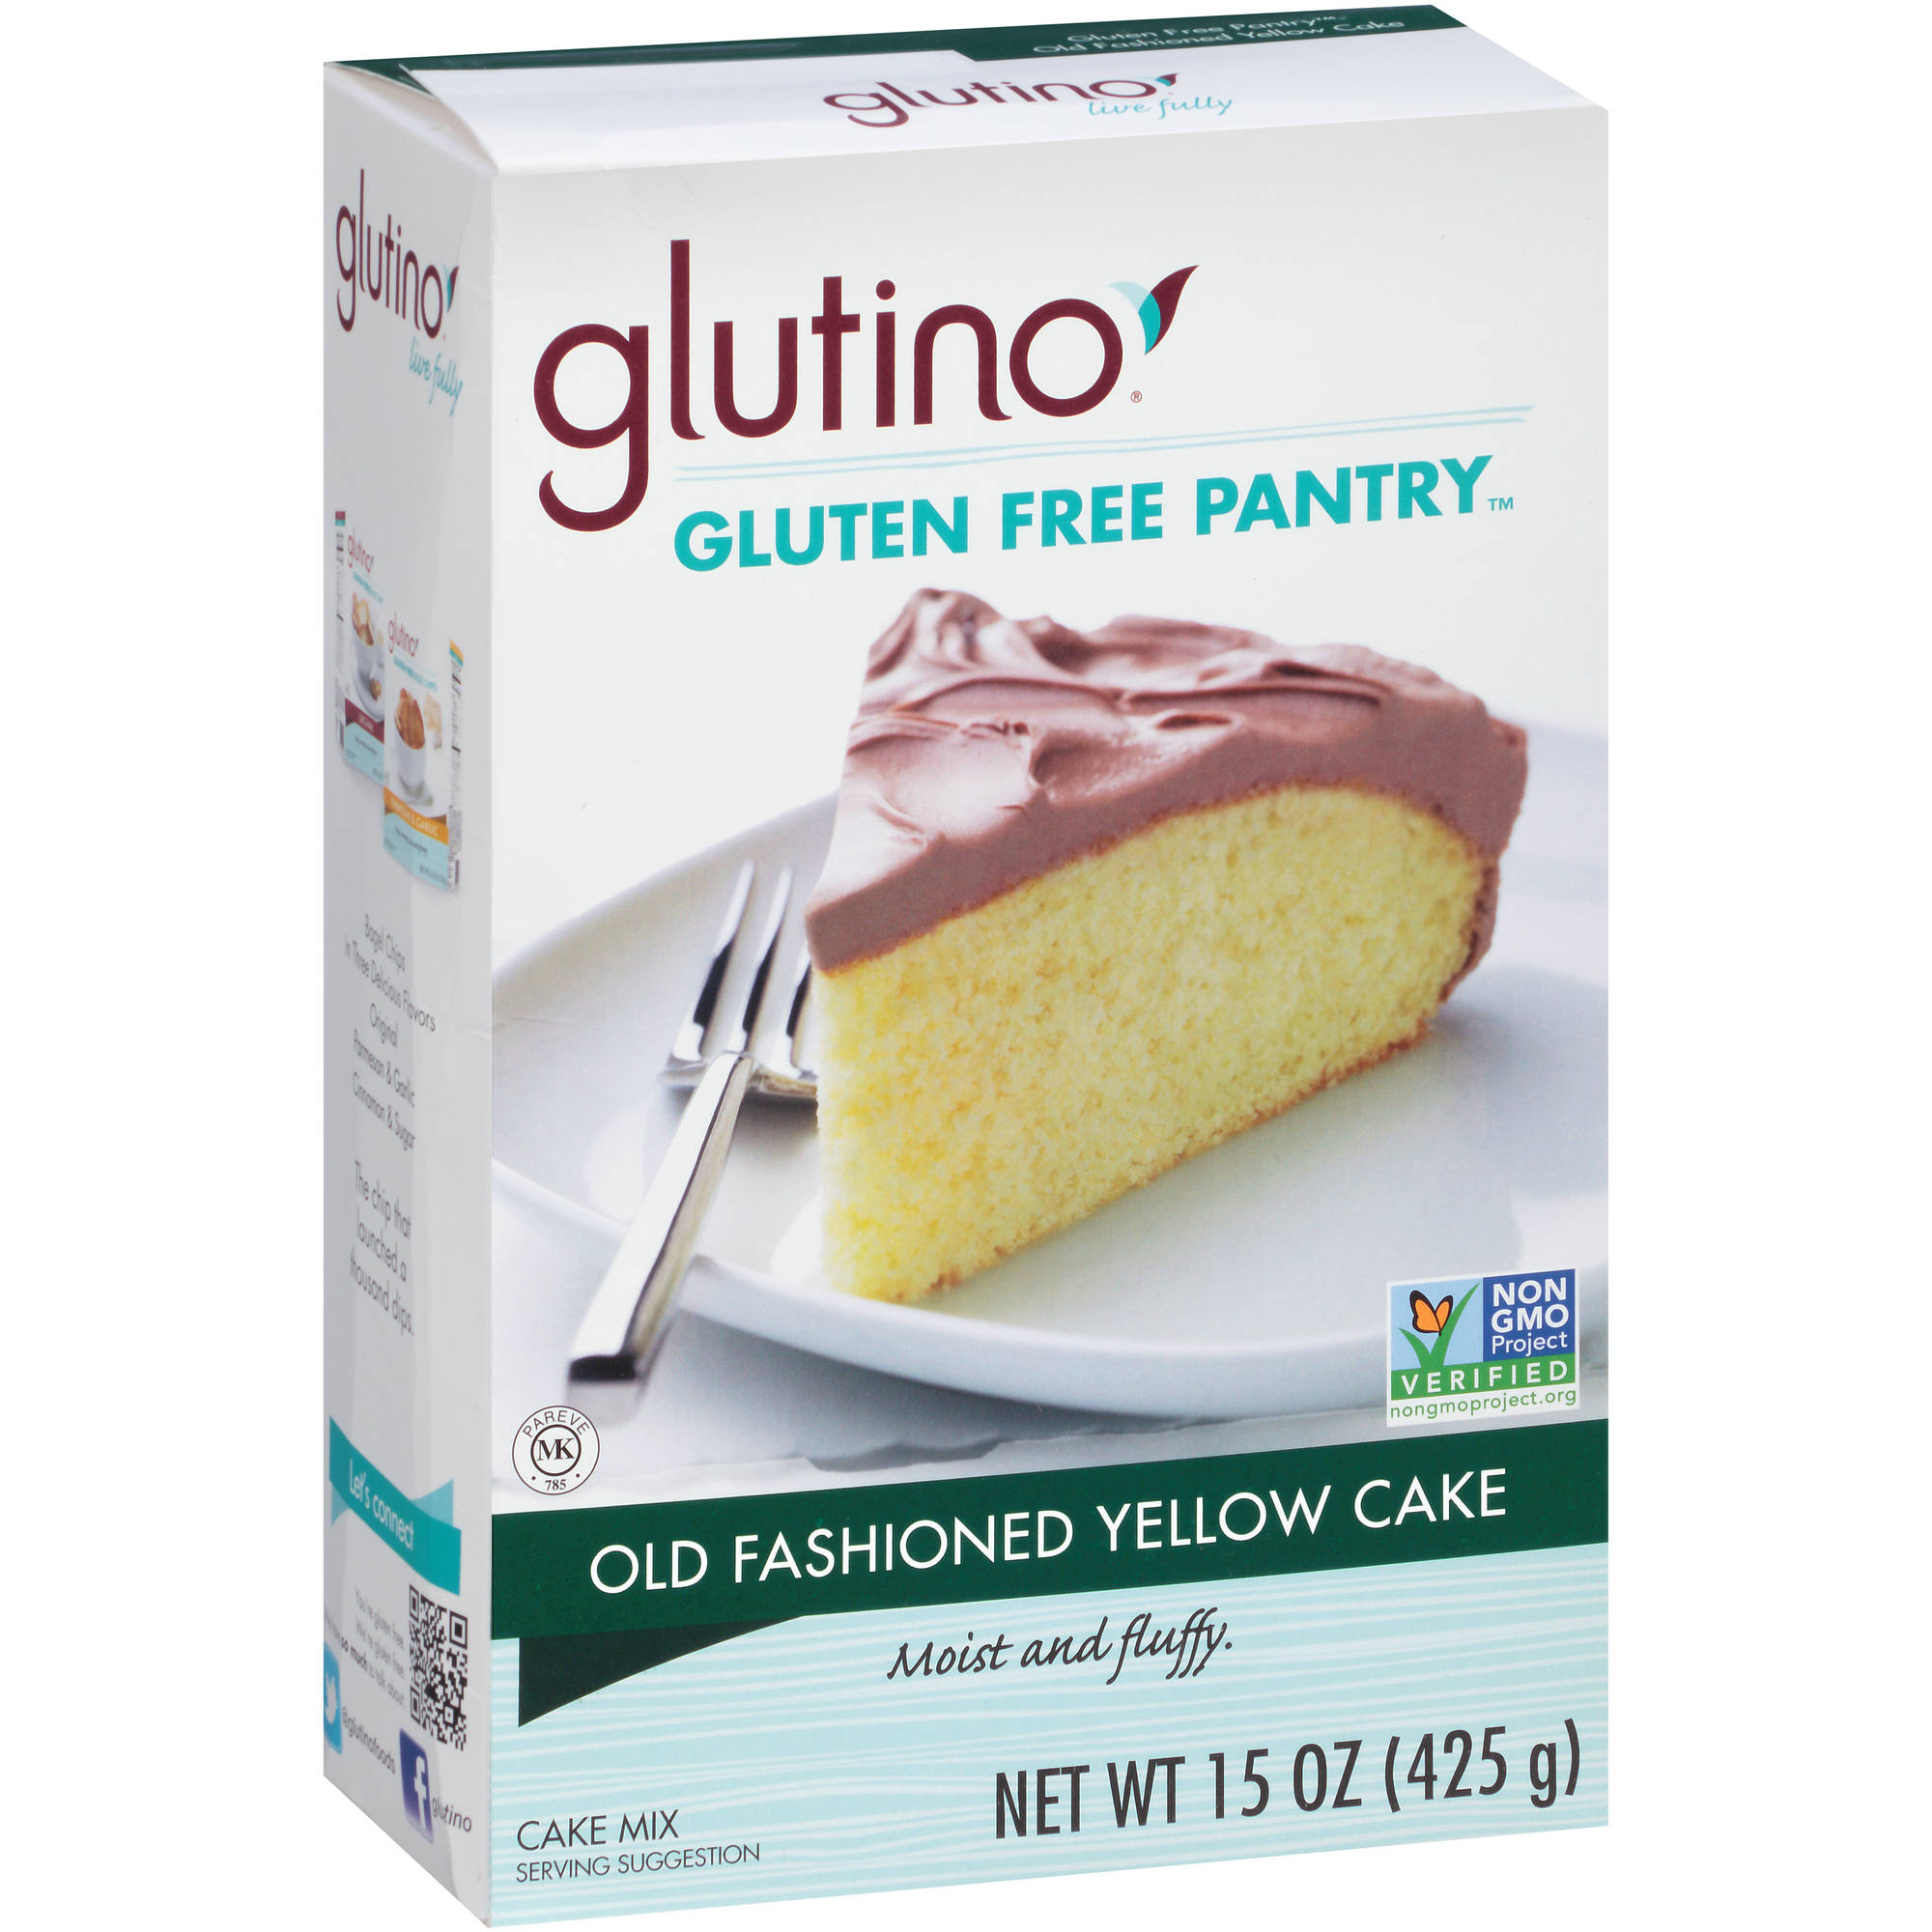 Glutino Gluten Free Pantry Old Fashioned